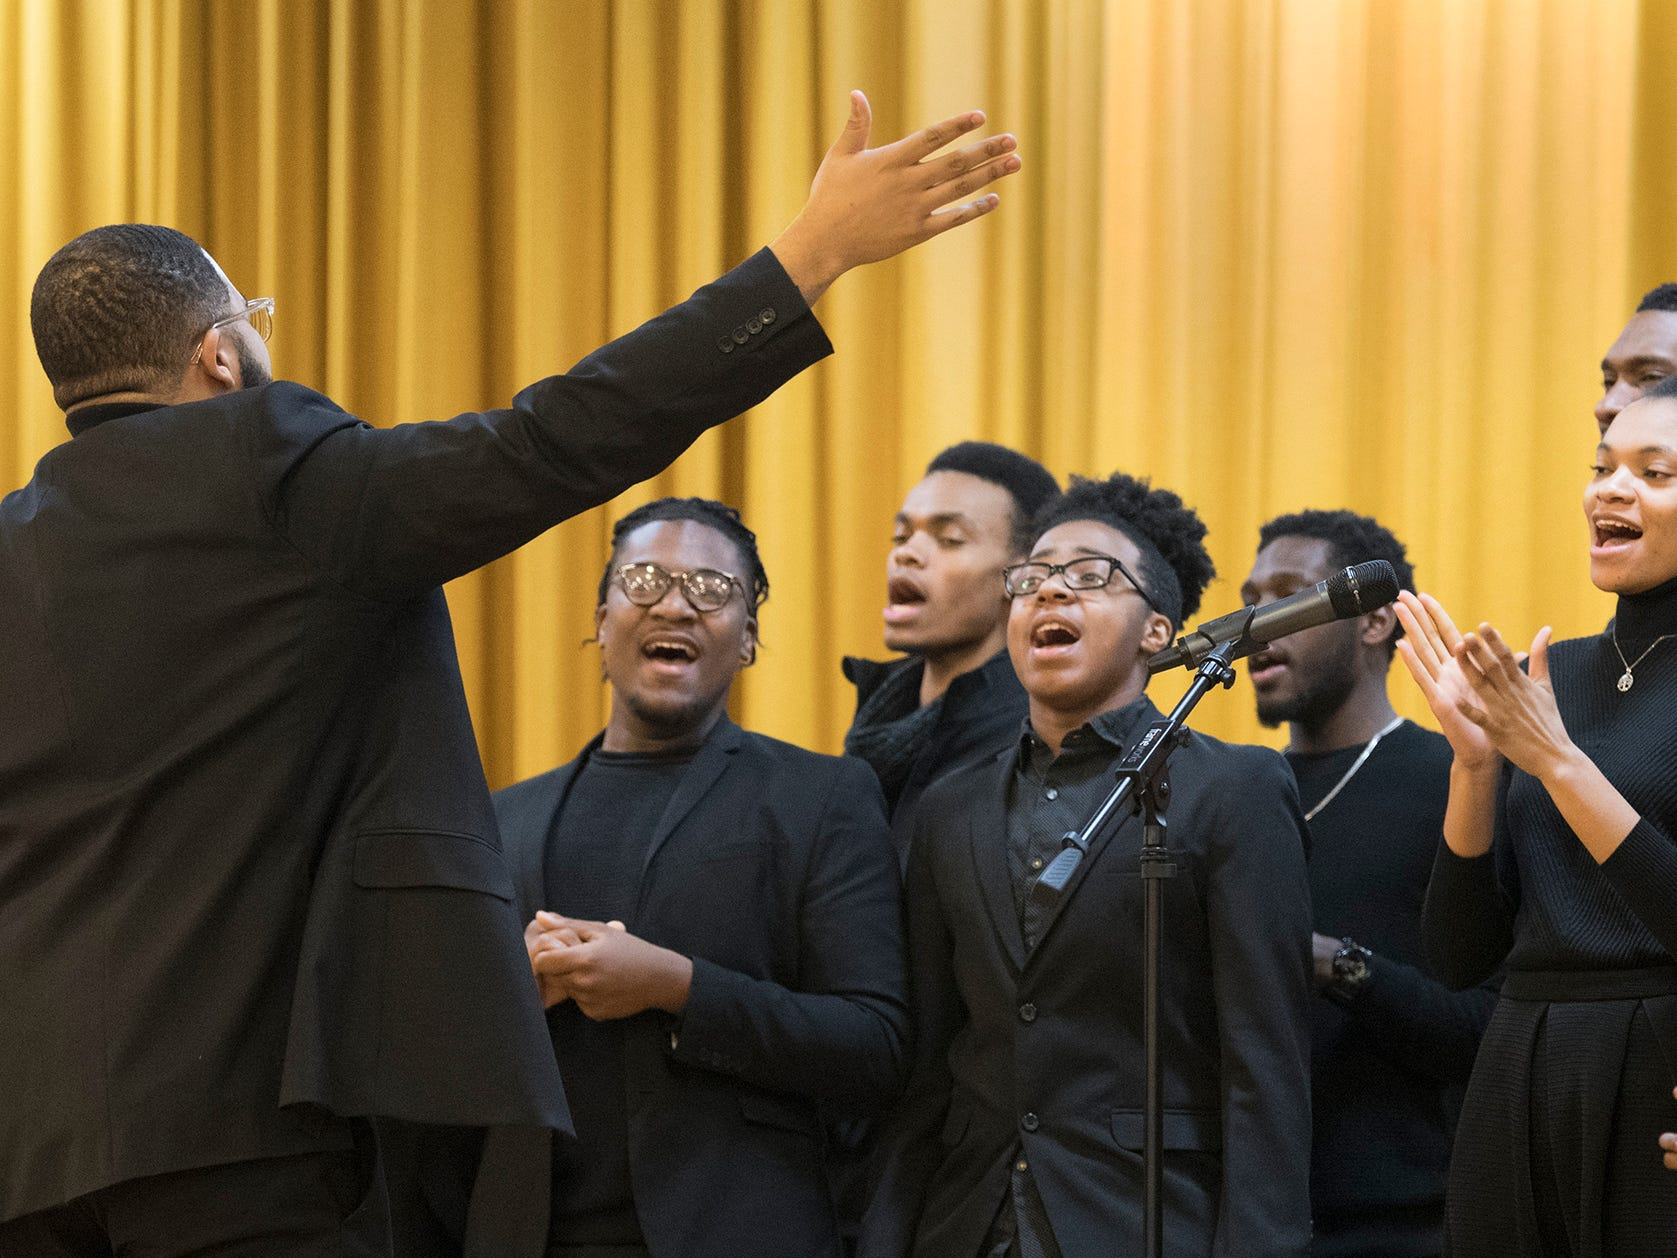 The Temple of Grace Ministries choir performs music during the 37th annual MLK Day of Service at Crispus Attucks Community Center in York, PA. .